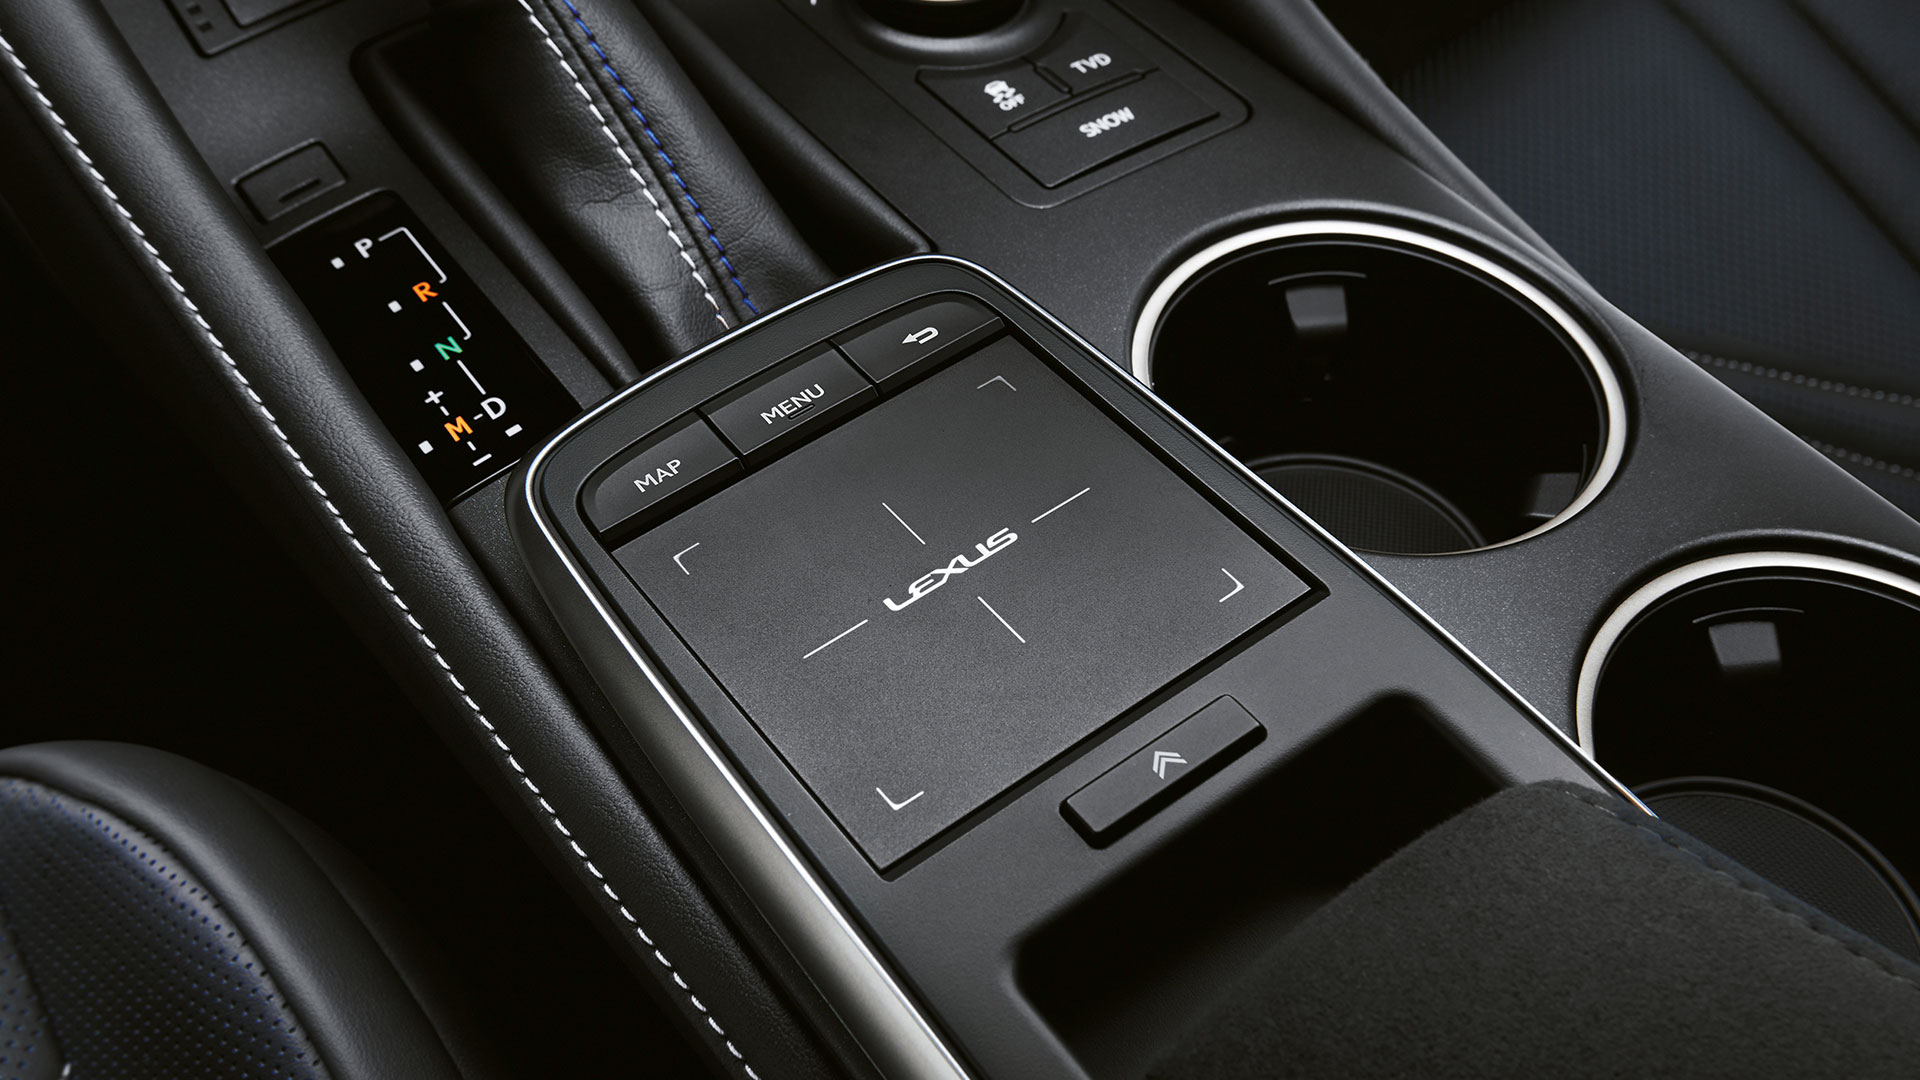 2018 lexus rc f features touch pad